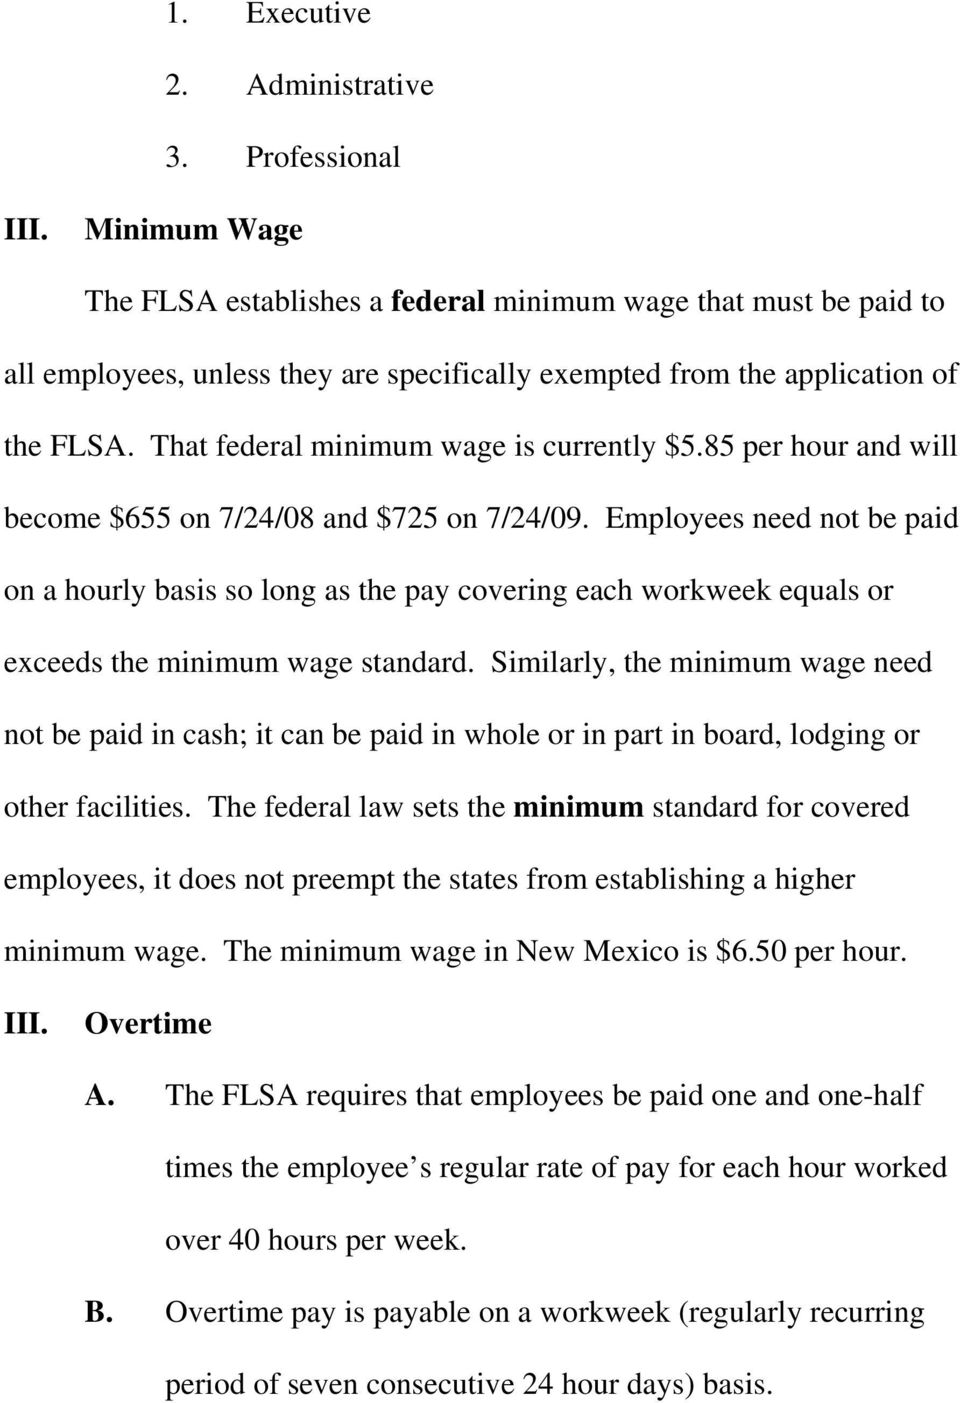 That federal minimum wage is currently $5.85 per hour and will become $655 on 7/24/08 and $725 on 7/24/09.